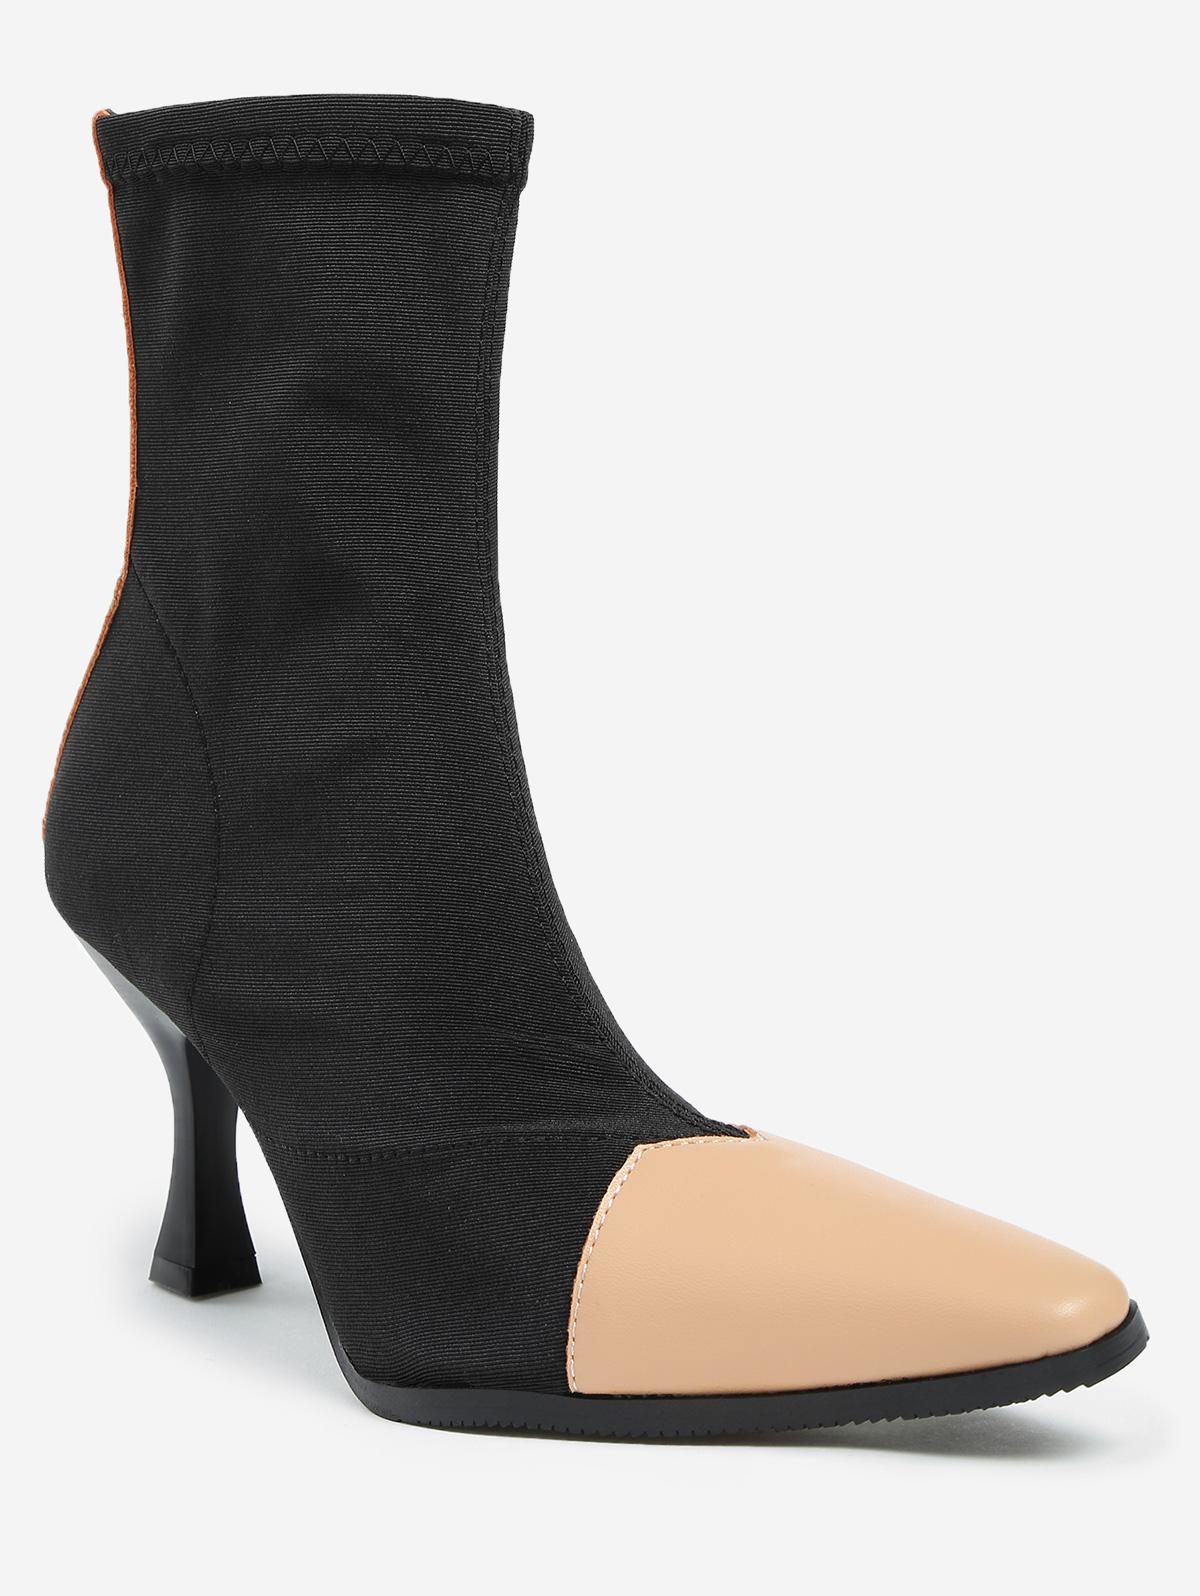 ZAFUL Contrasting Pointed Toe Cap Stiletto Heel Short Boots